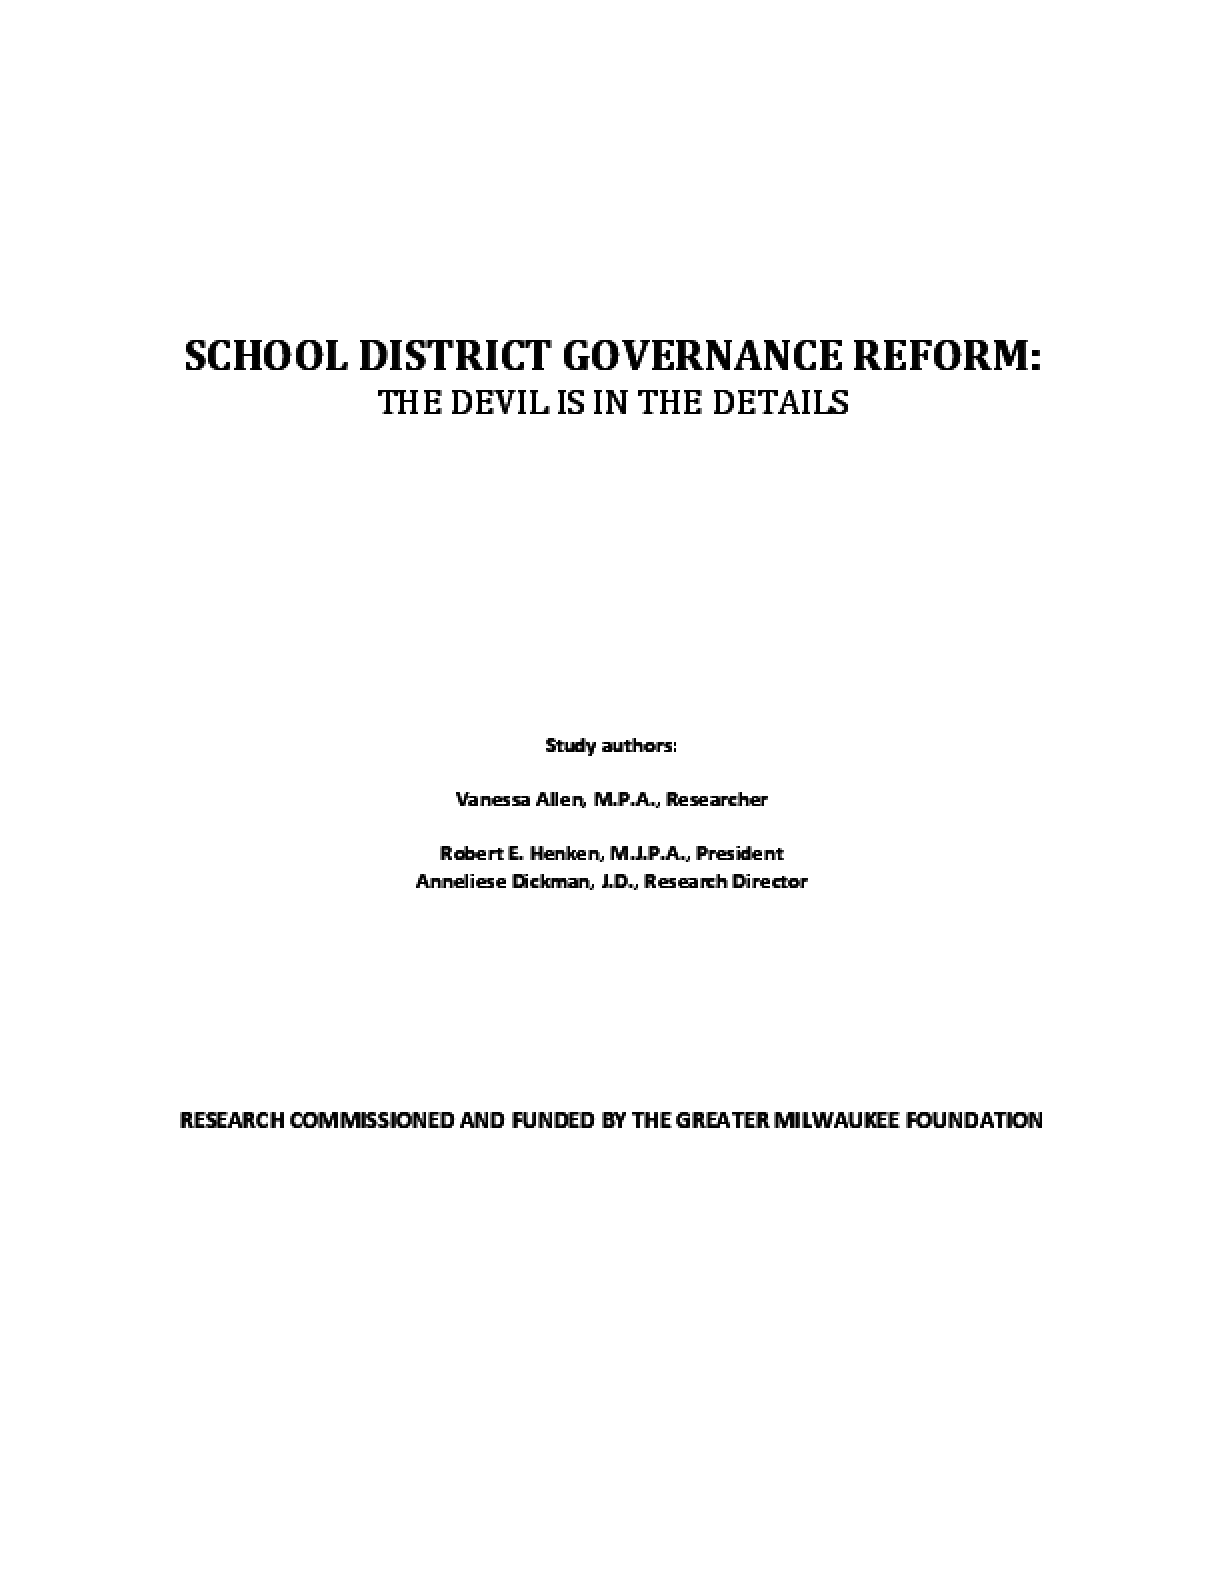 School District Governance Reform: The Devil Is in the Details